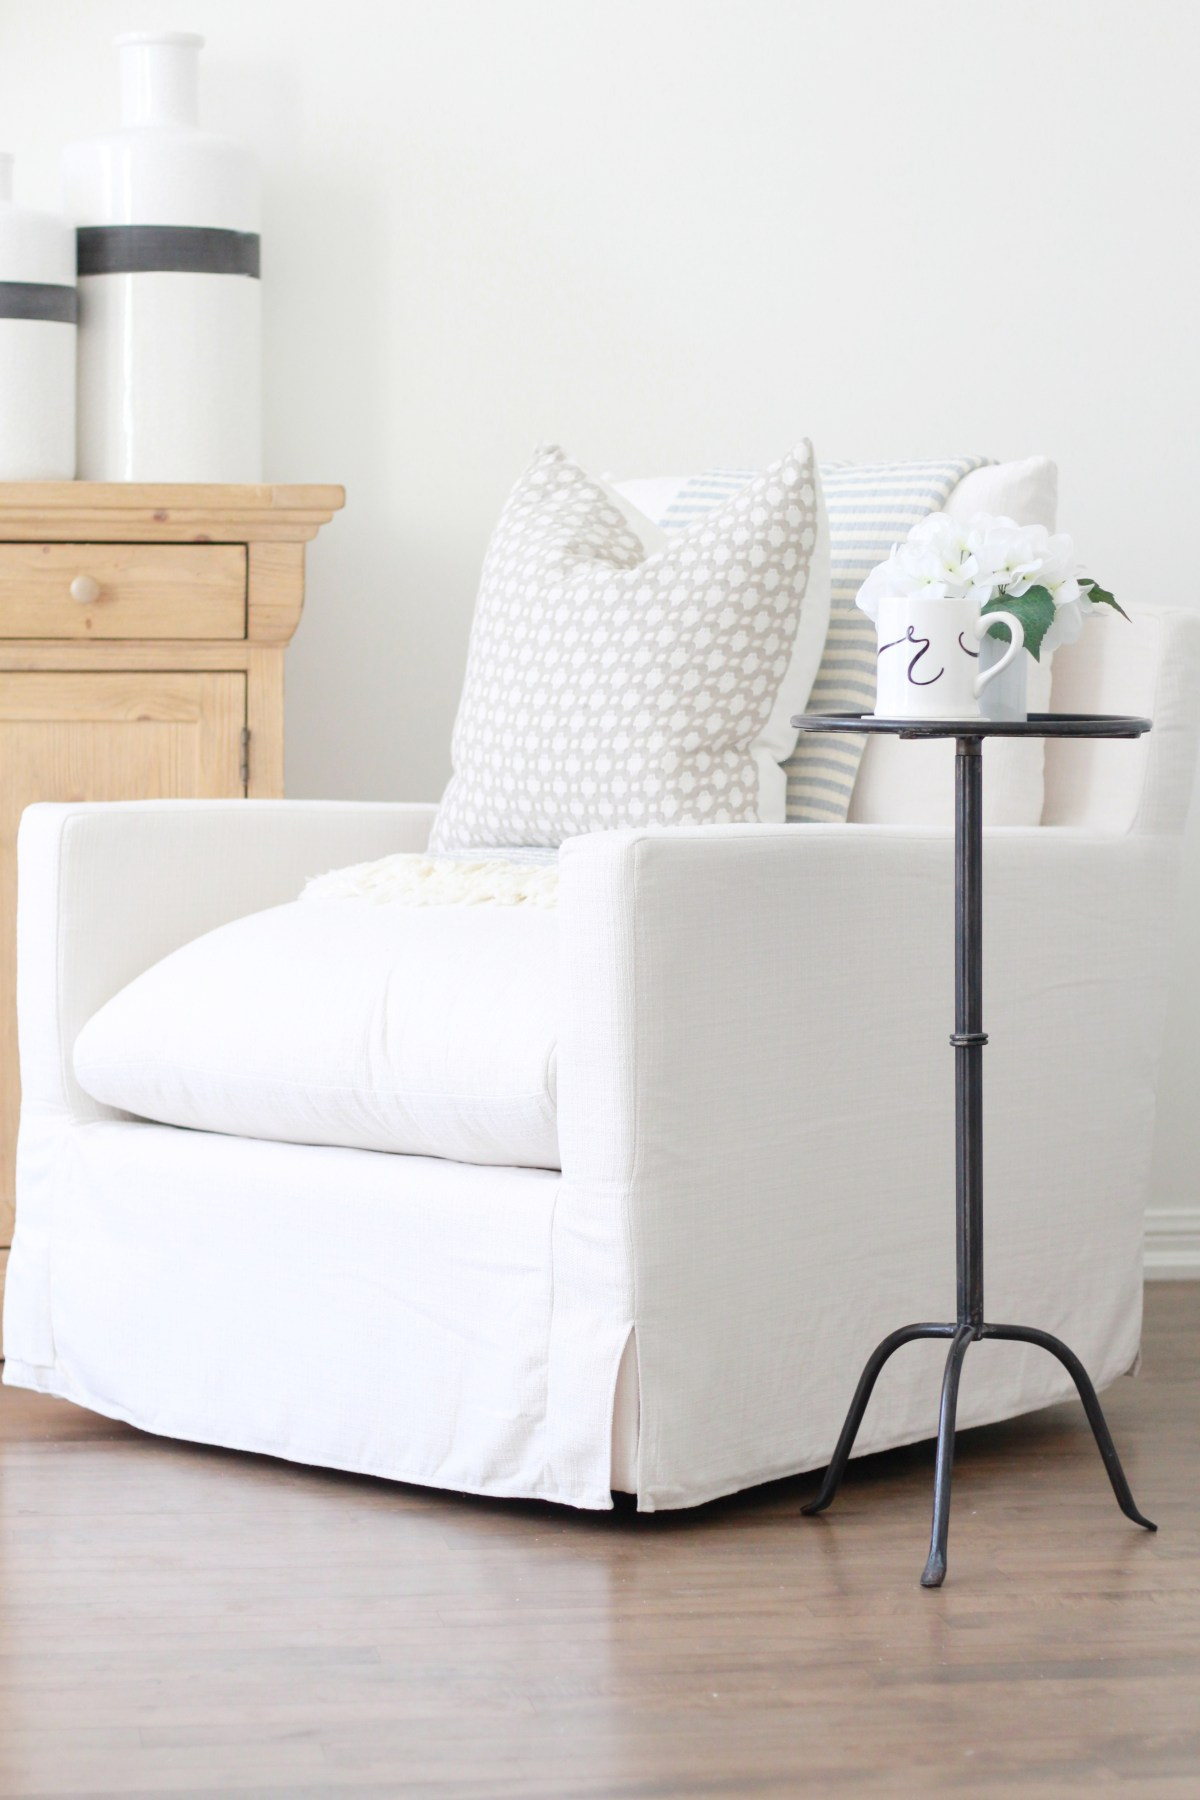 A review of the Brynn Swivel Chair by World Market